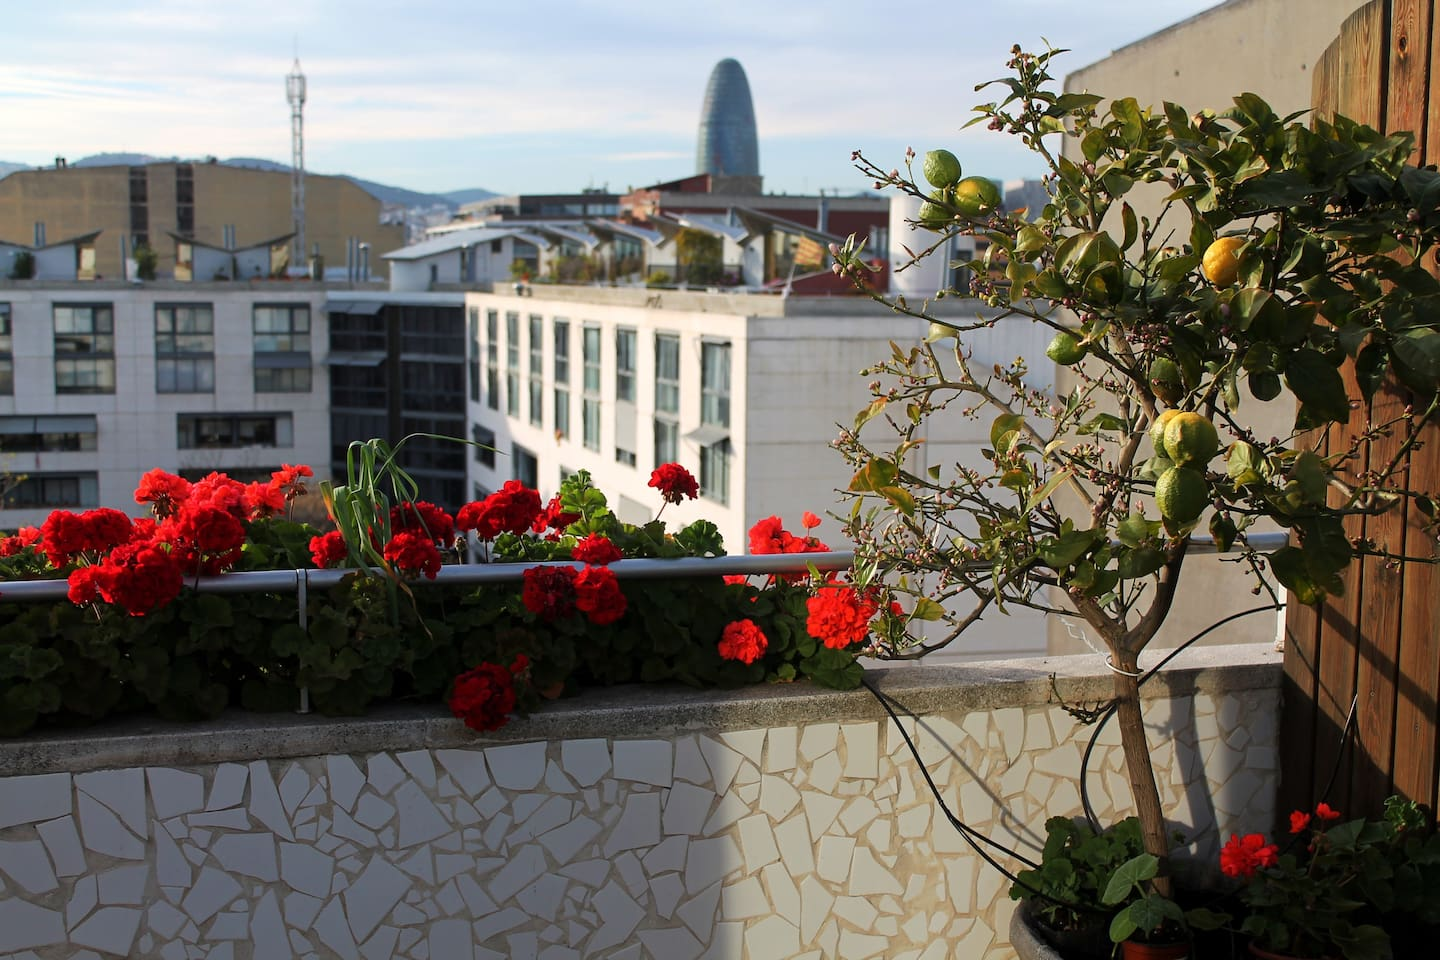 Views of the garden and Agbar Tower